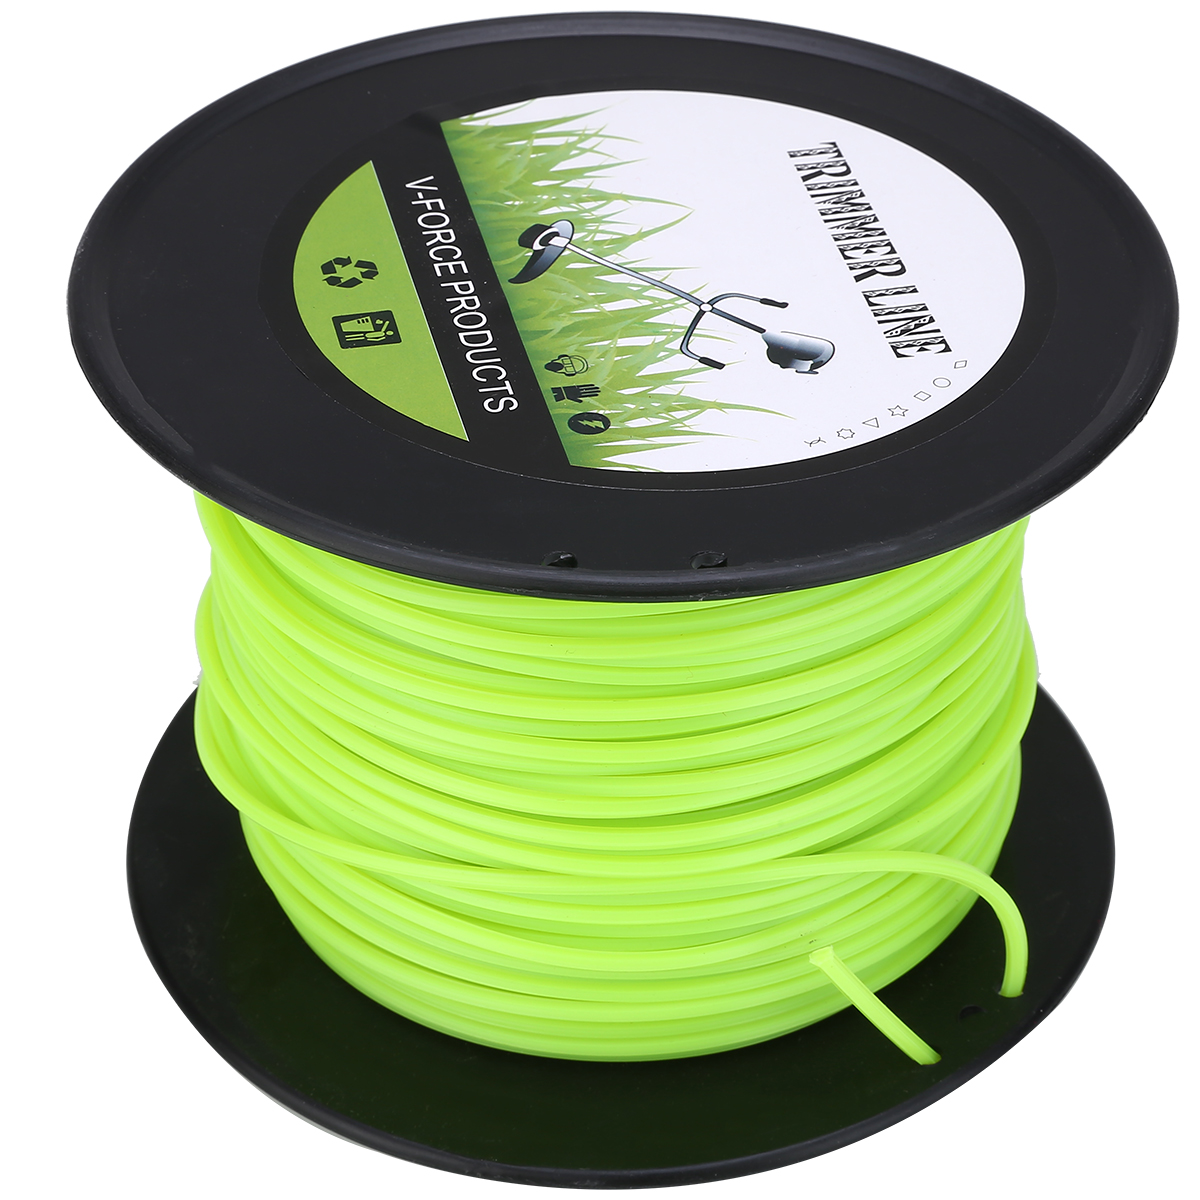 100m Lawn Mower Trimmer Nylon Line Rope Diameter 3mm Trimmer Thread Rope Mowing Wire For Large Scale Cutting Mowing